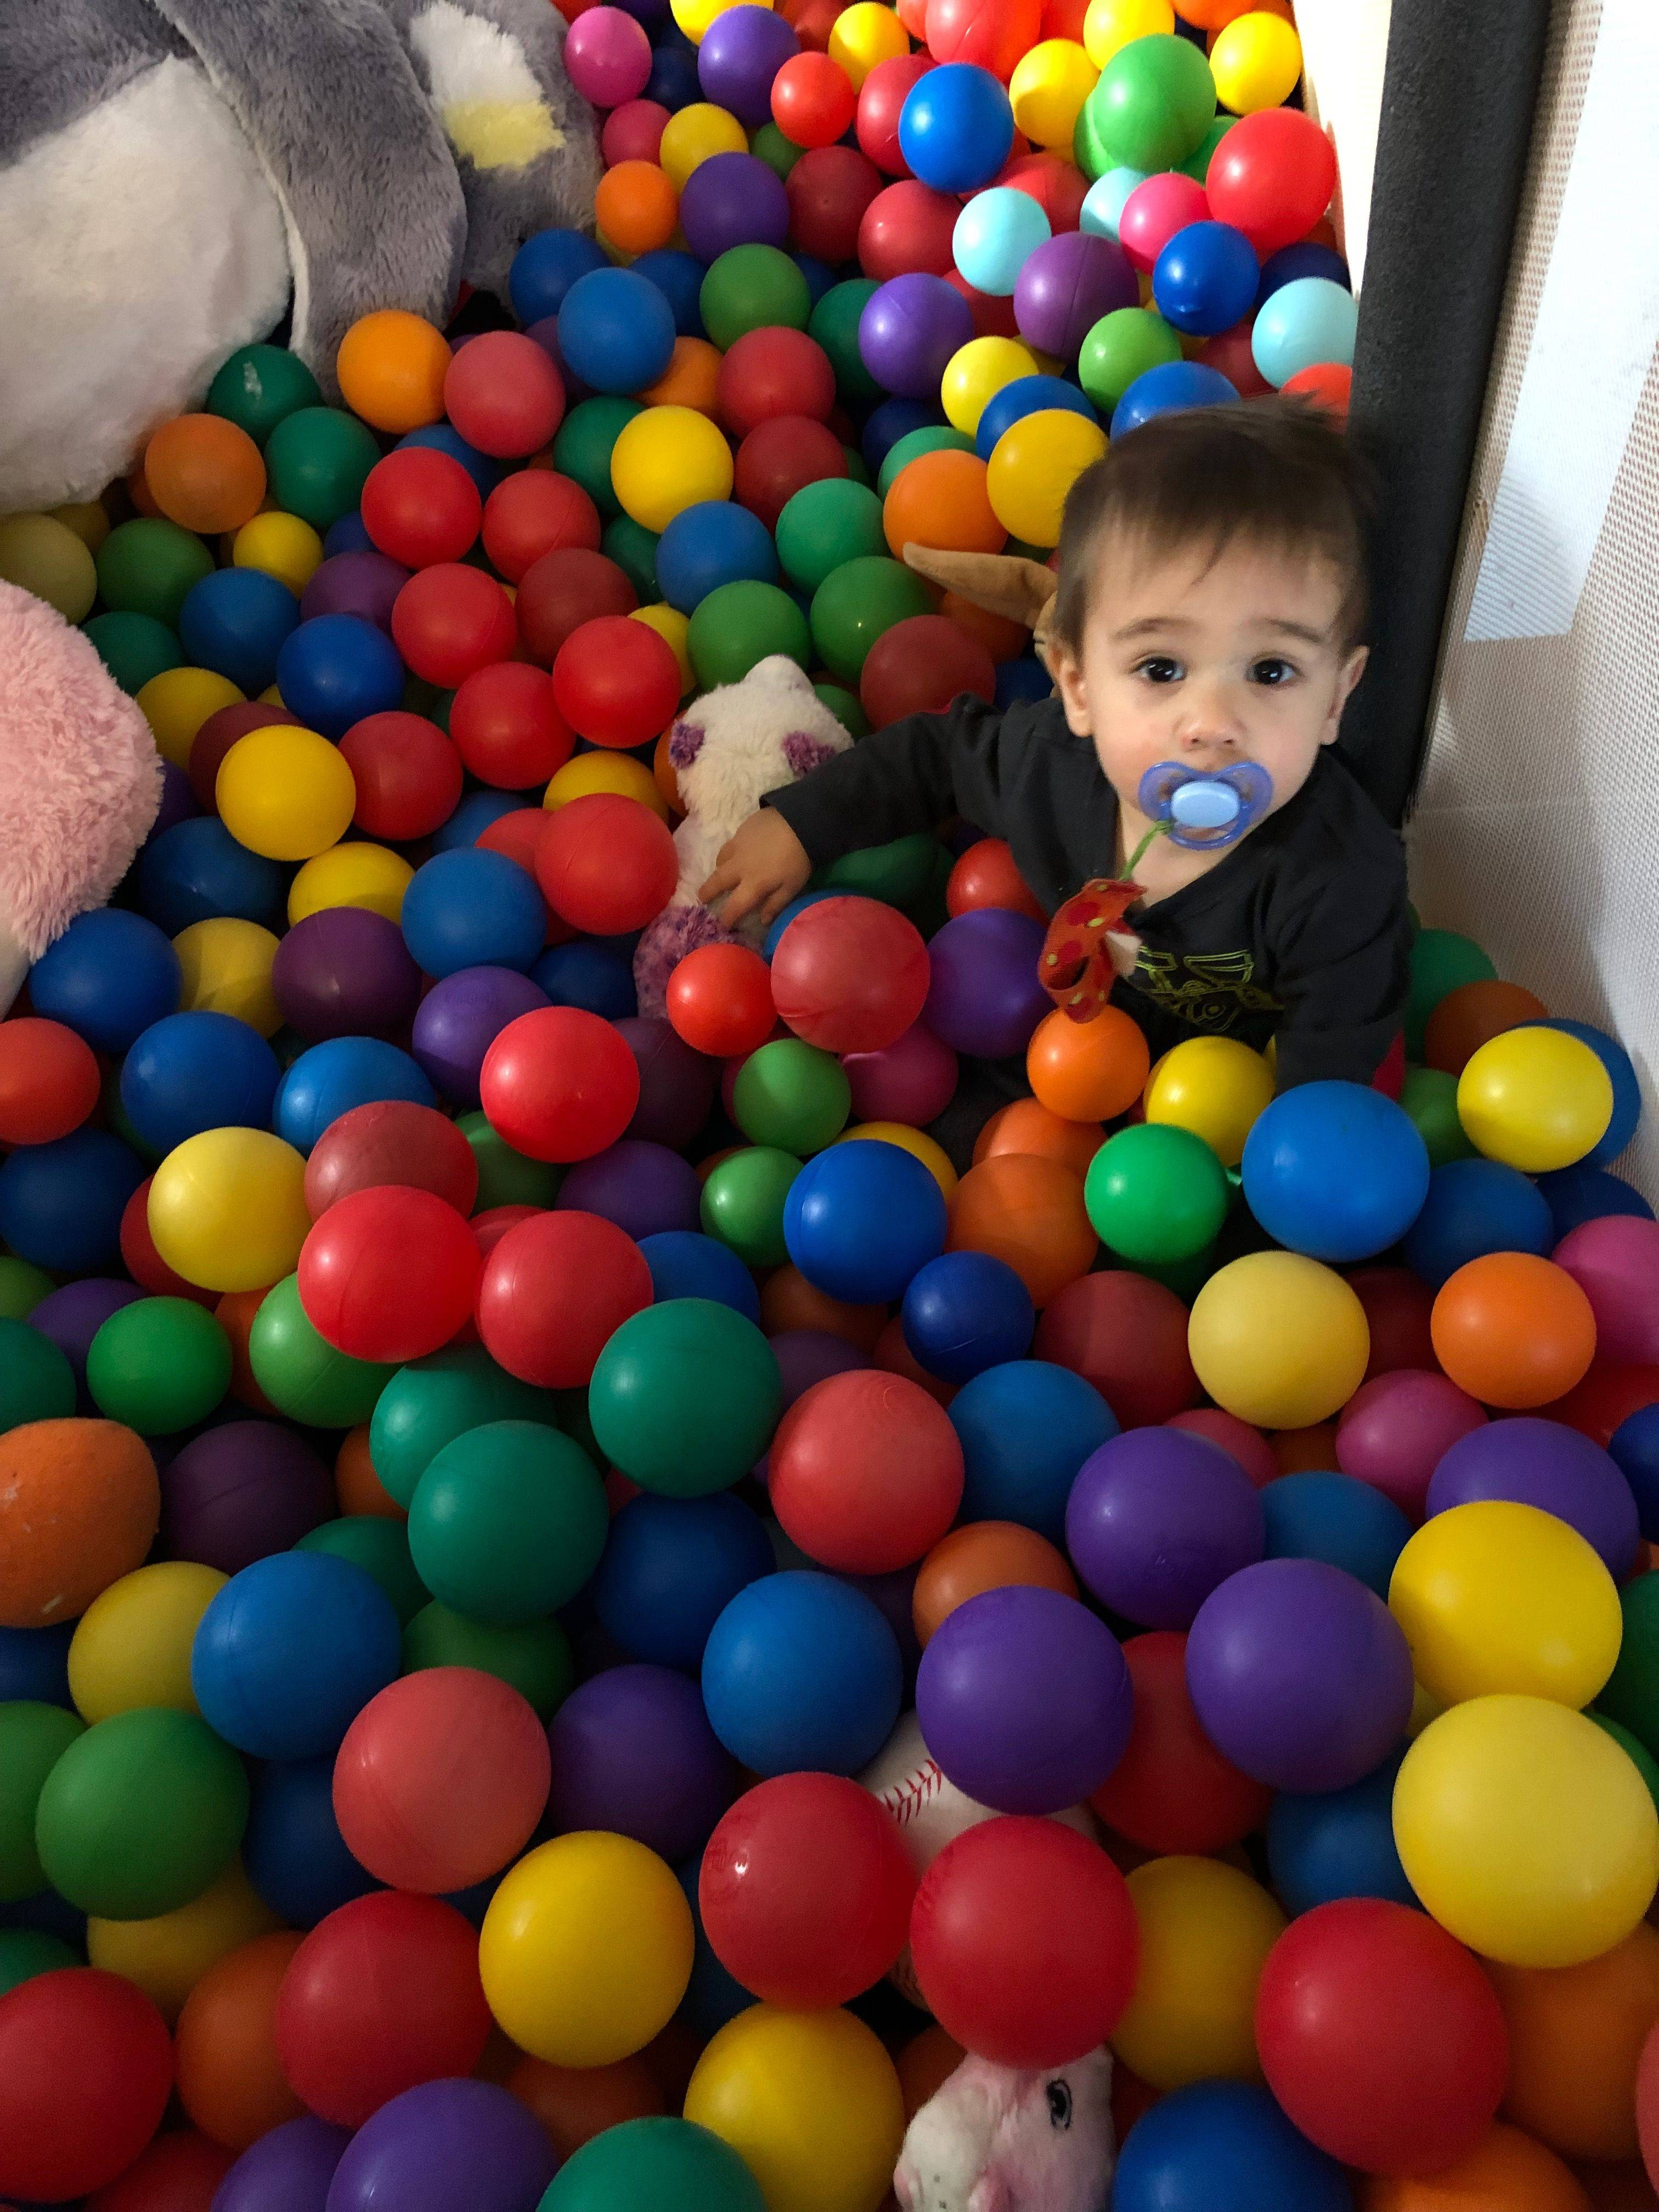 old ball pit